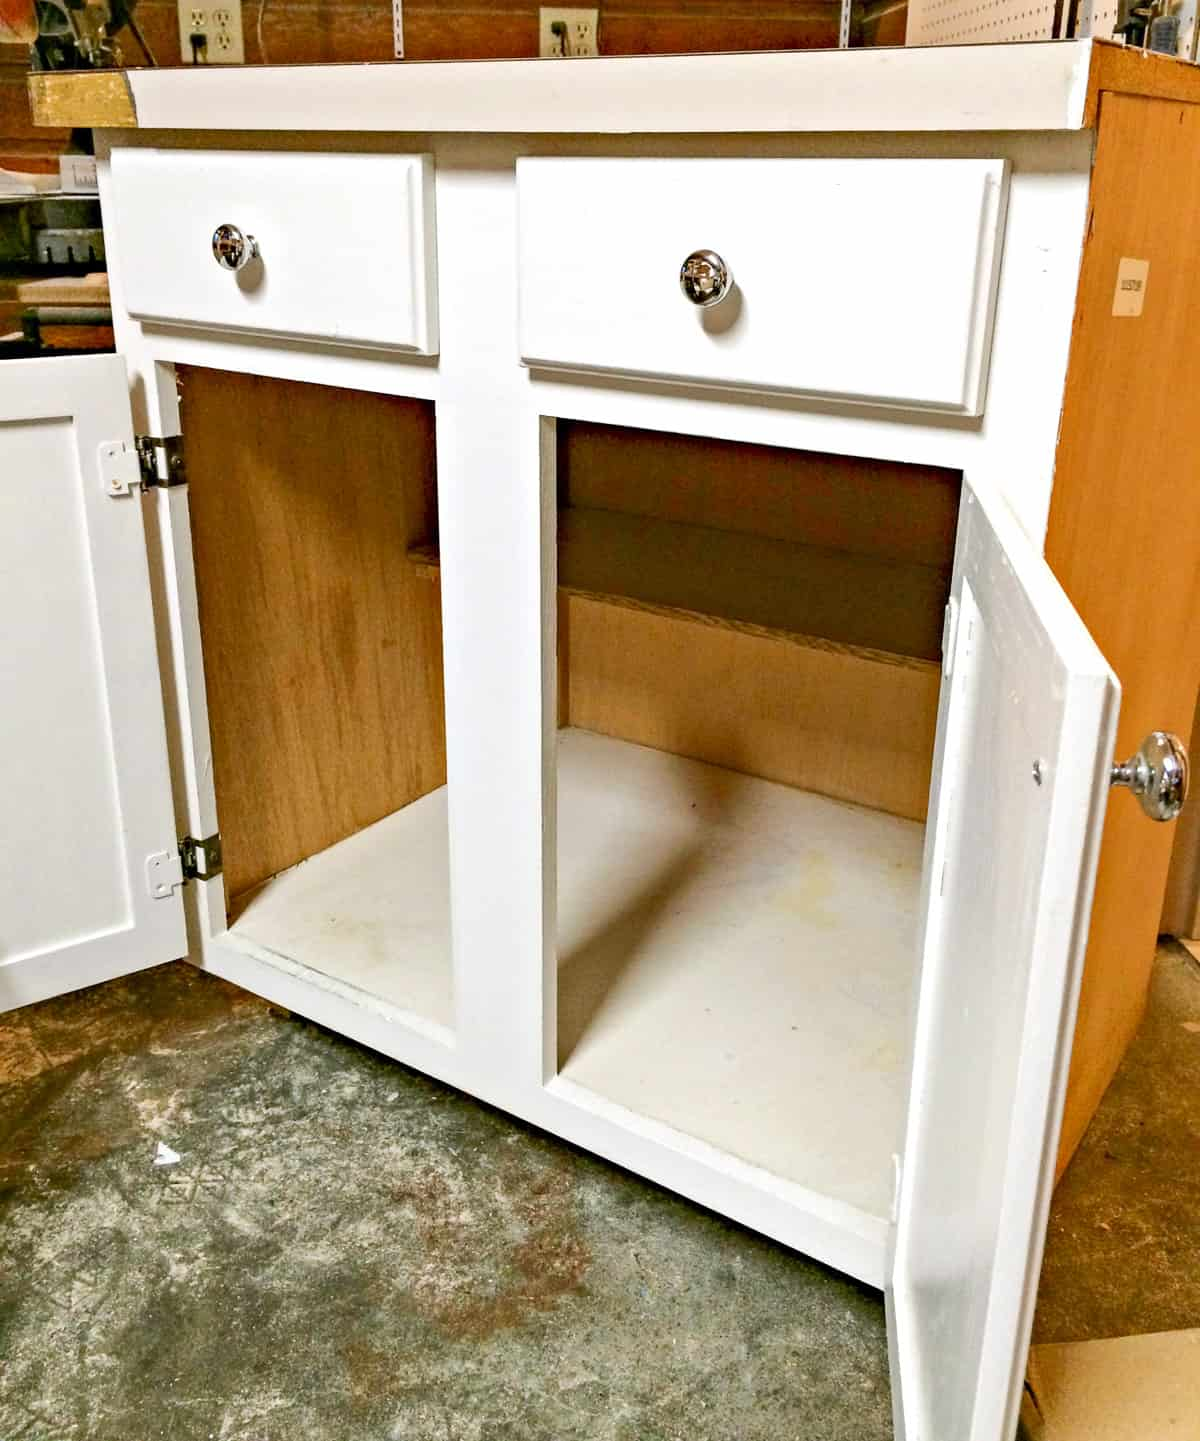 used kitchen cabinet with doors open